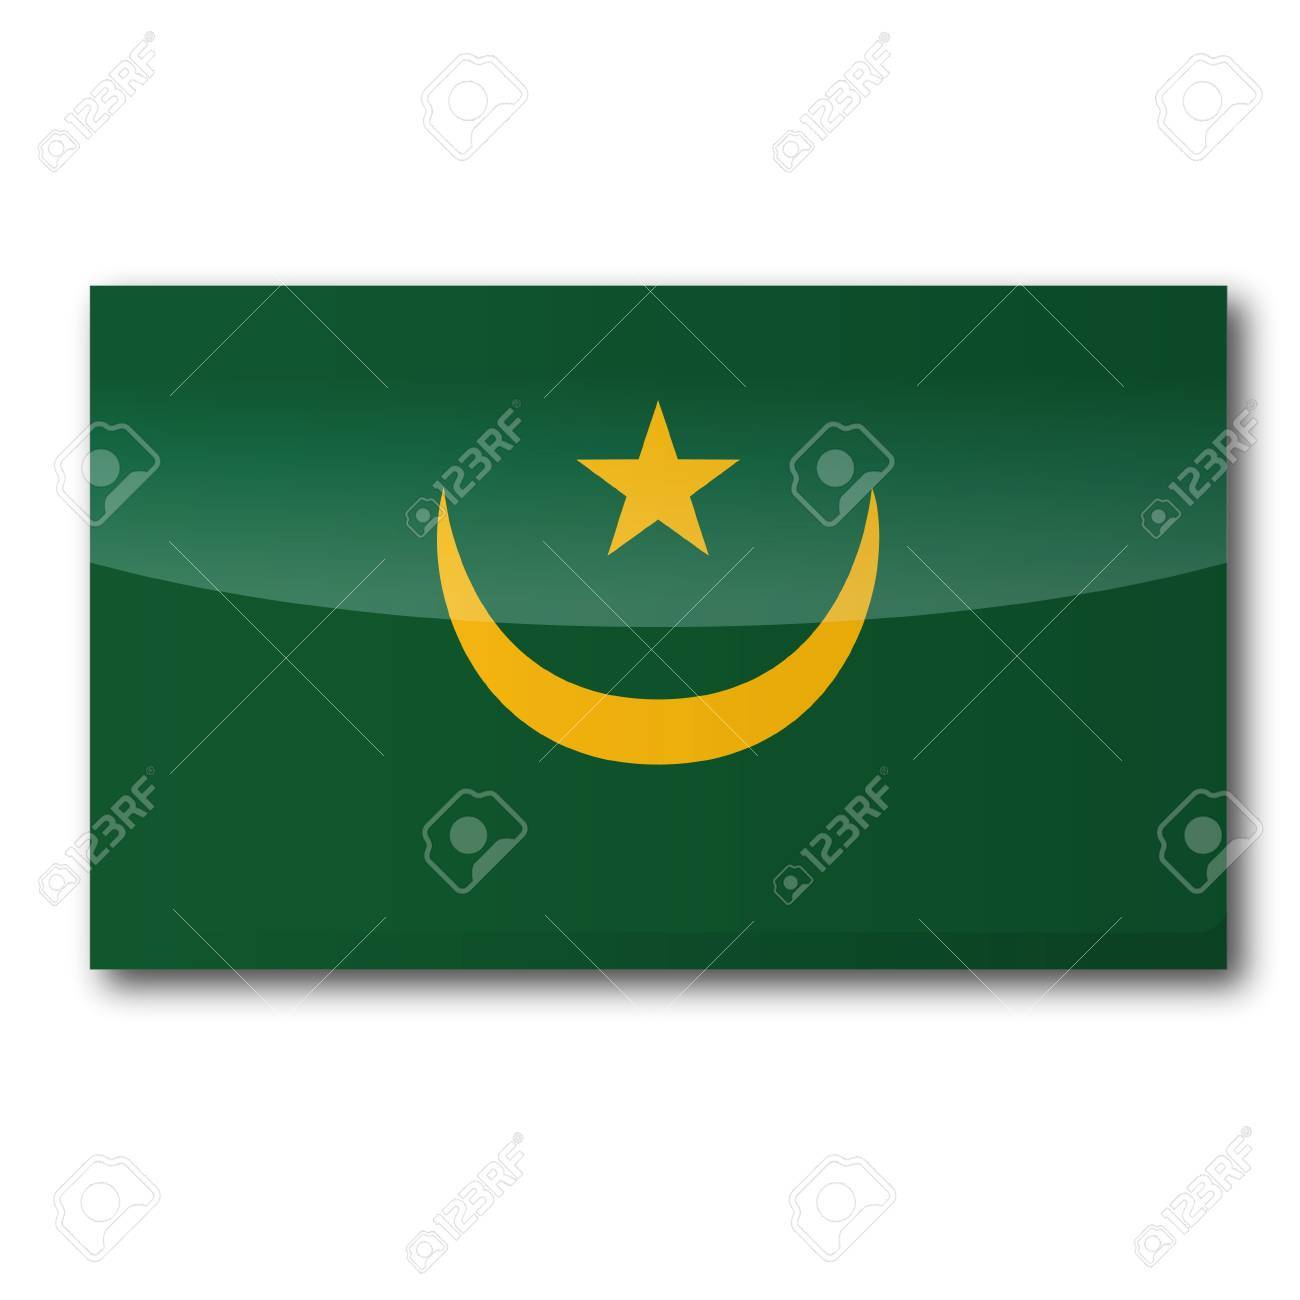 Flag Mauritania Stock Vector - 16331272